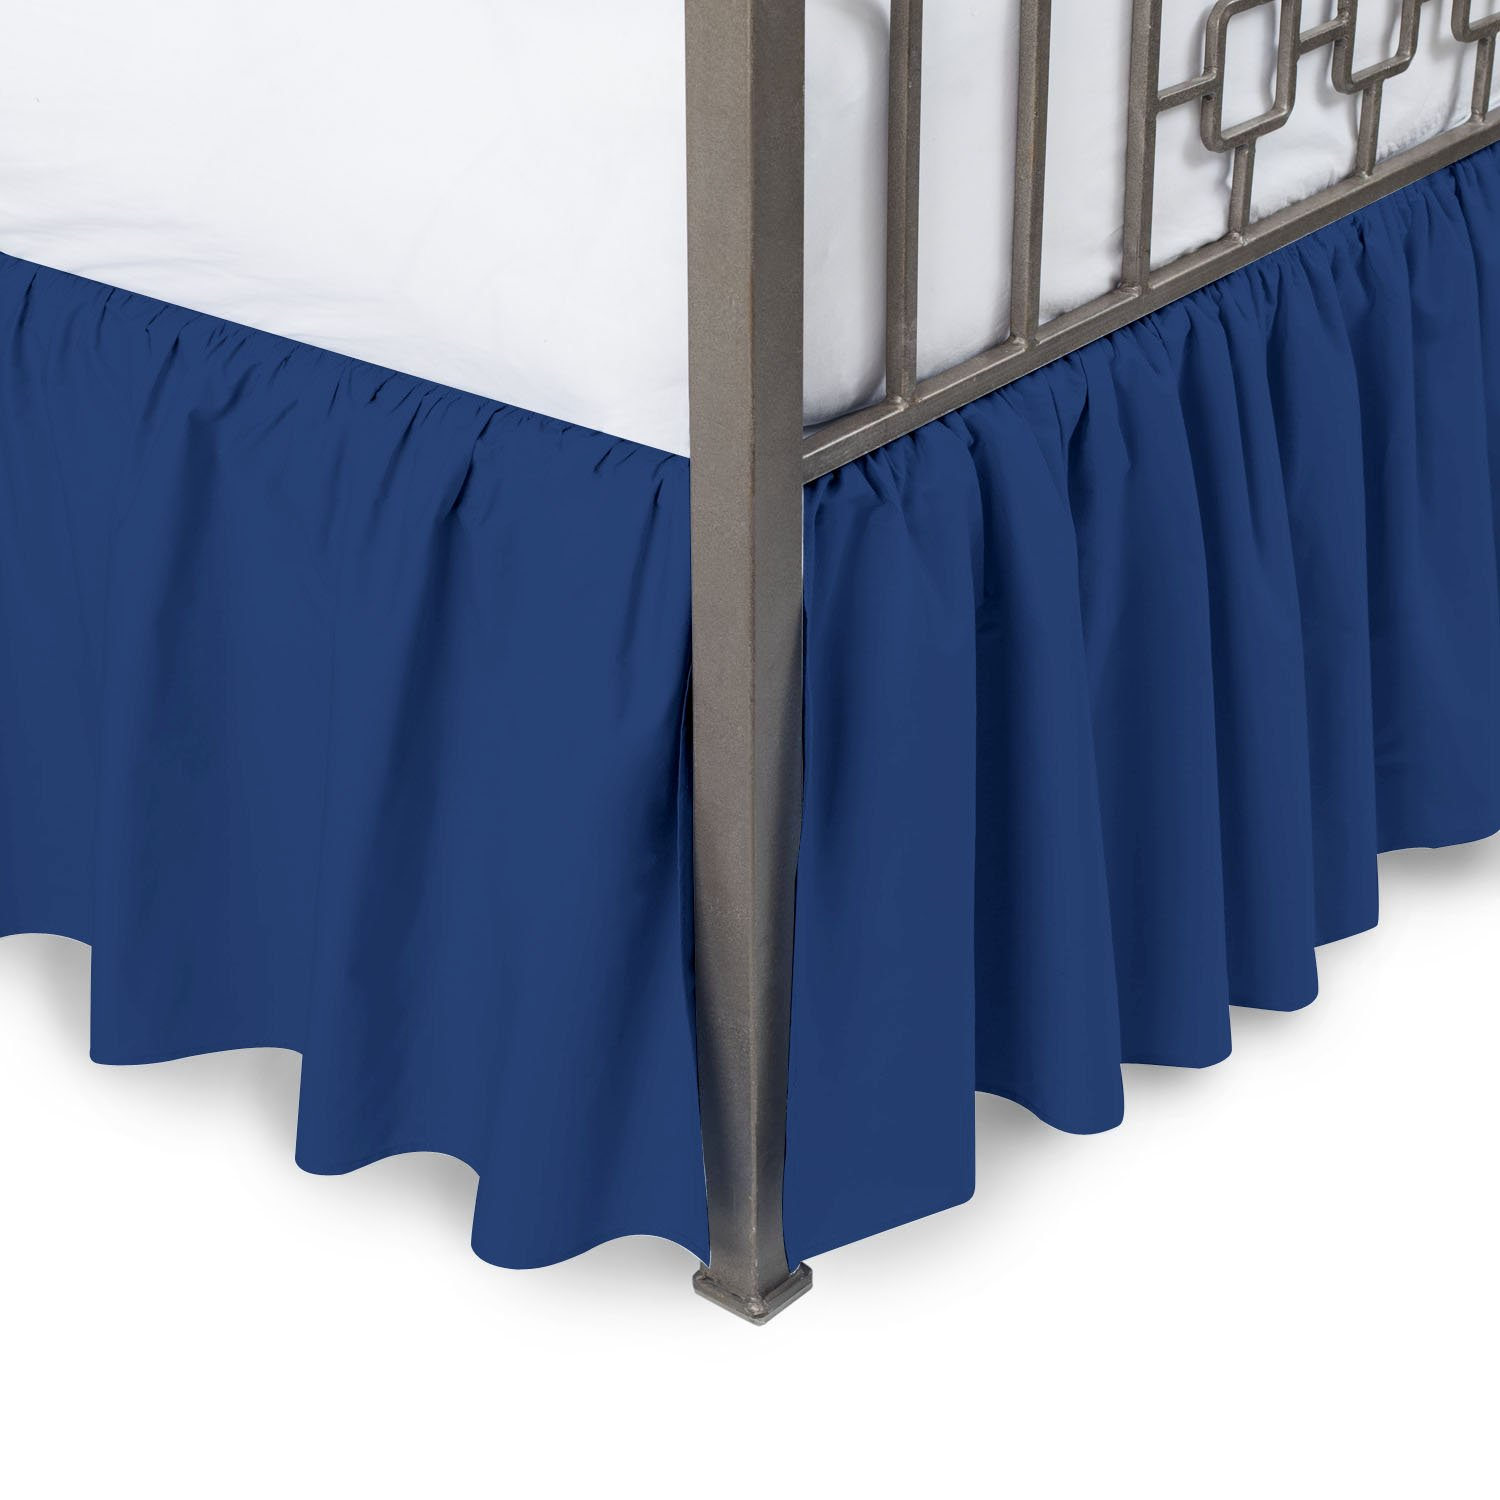 Vivacious Collection Hotel Quality 800TC Pure Cotton Dust Ruffle Bed Skirt 16'' Drop length 100% Egyptian Cotton Navy Blue Queen Size